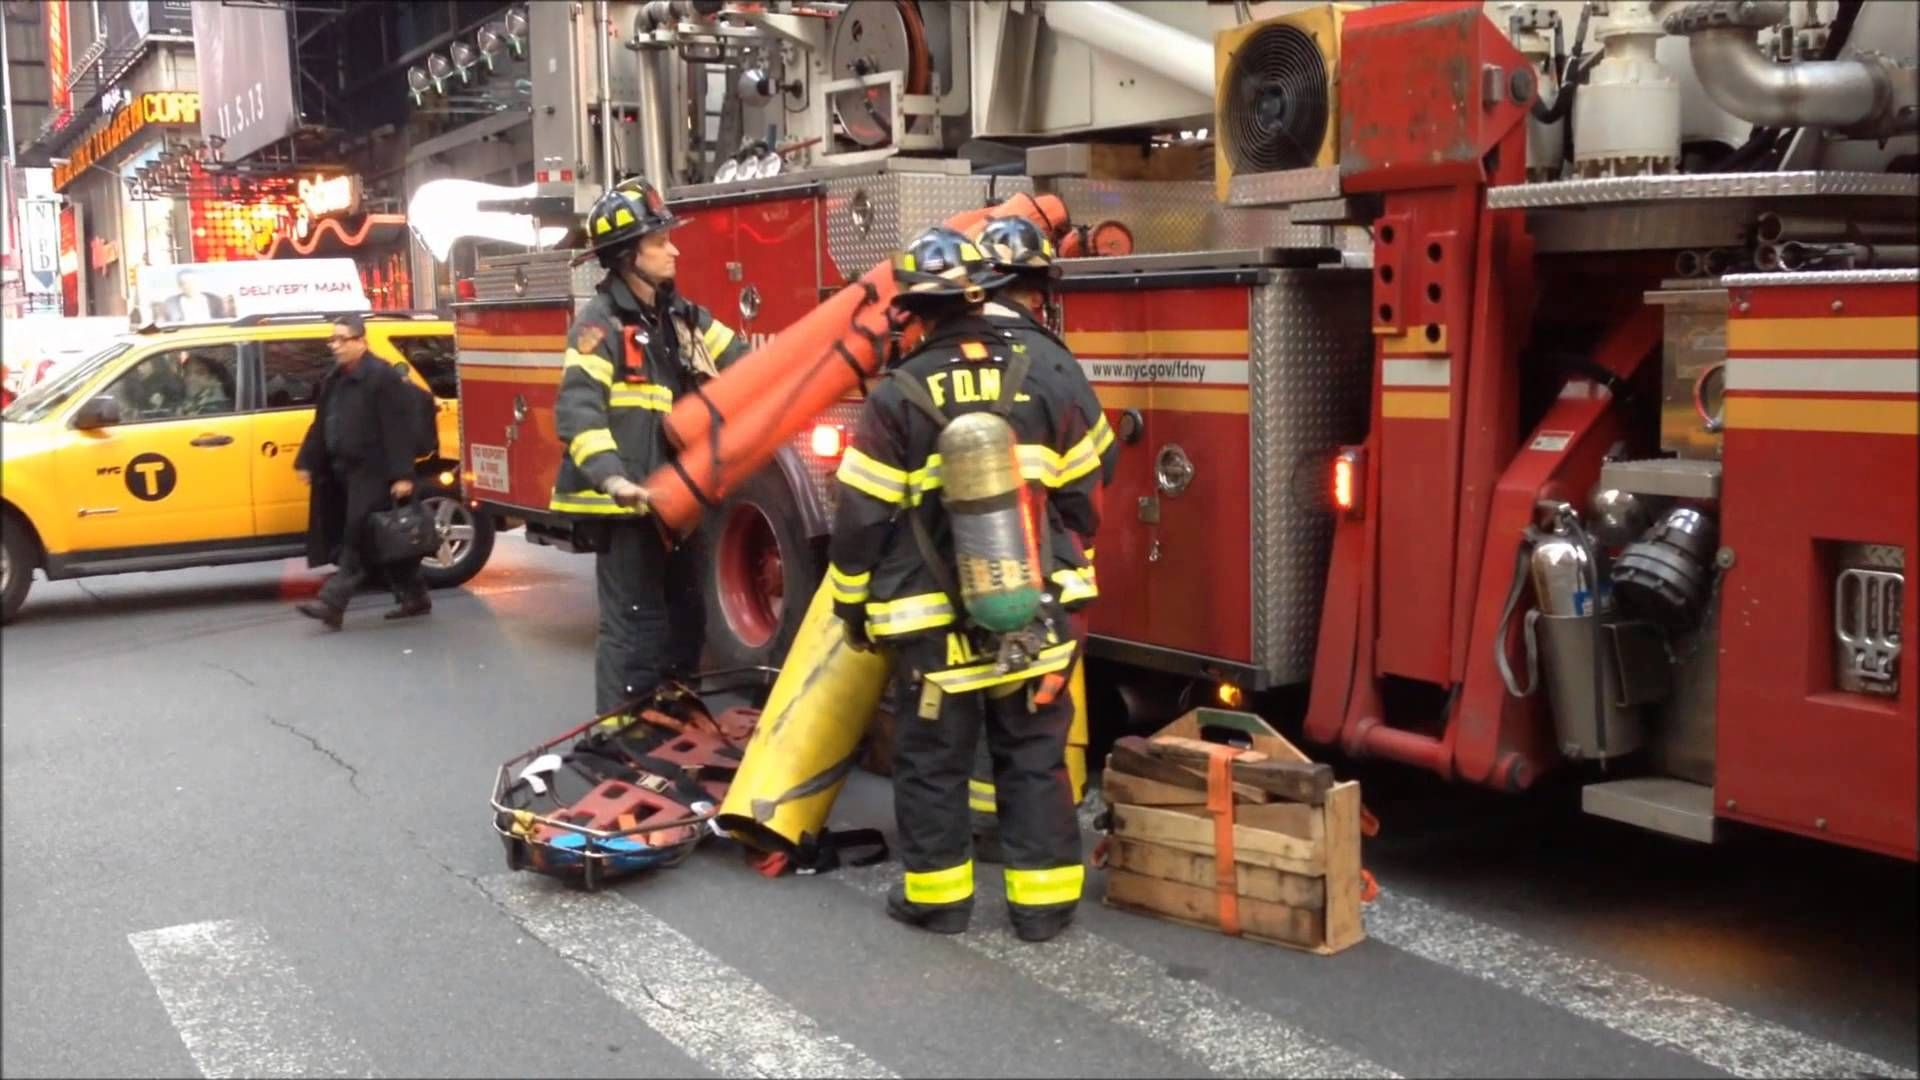 Fdny Rescue 1 Fdny Engine 65 54 26 Fdny Ladder 4 Fdny Tower Ladder 21 Fdny Battalion Chief 9 Fdny Rescue 1 Fdny Fire Station